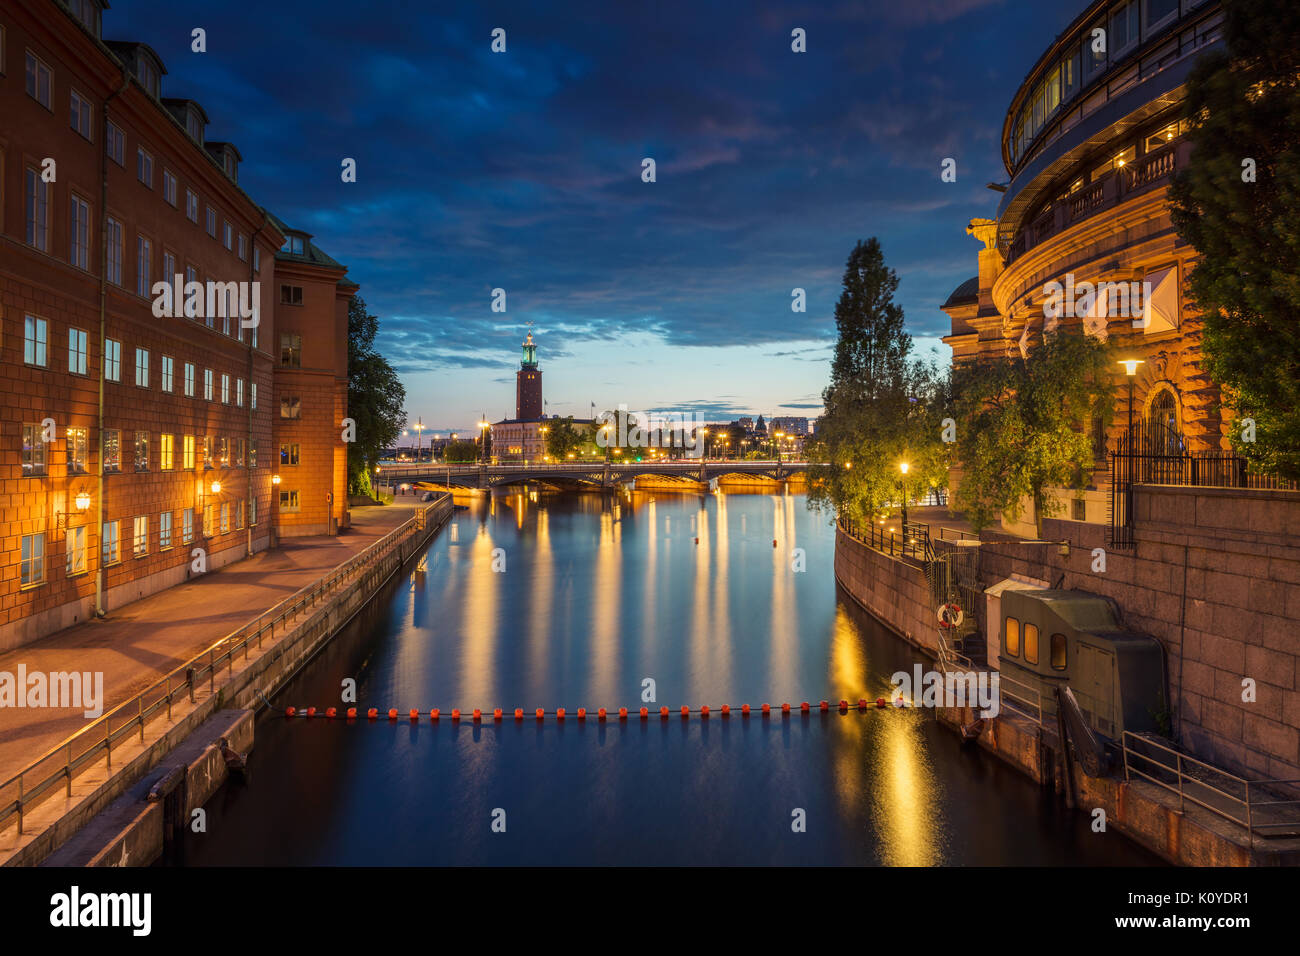 Stockholm. Cityscape image of old town Stockholm, Sweden during sunset. - Stock Image